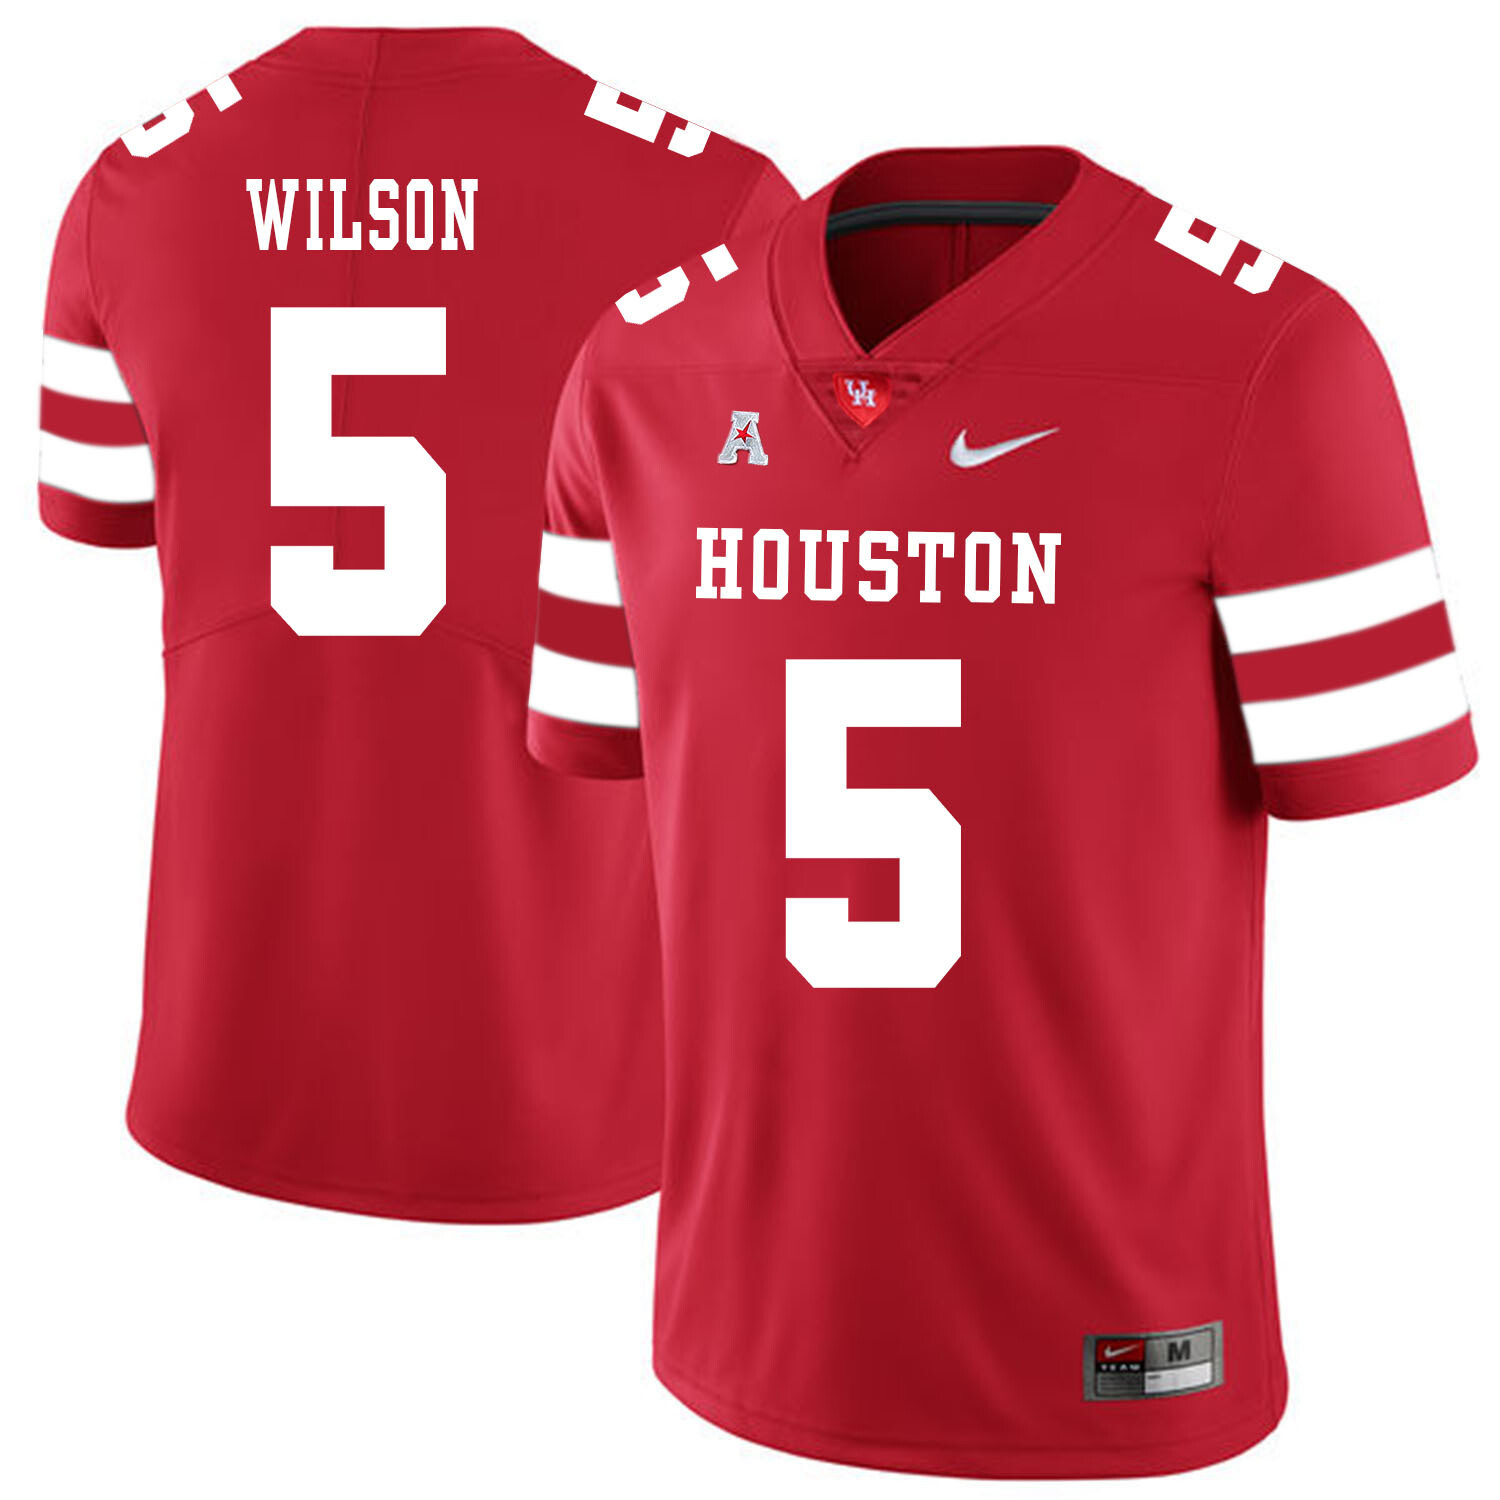 Houston Cougars #5 Howard Wilson College Football Jersey Red